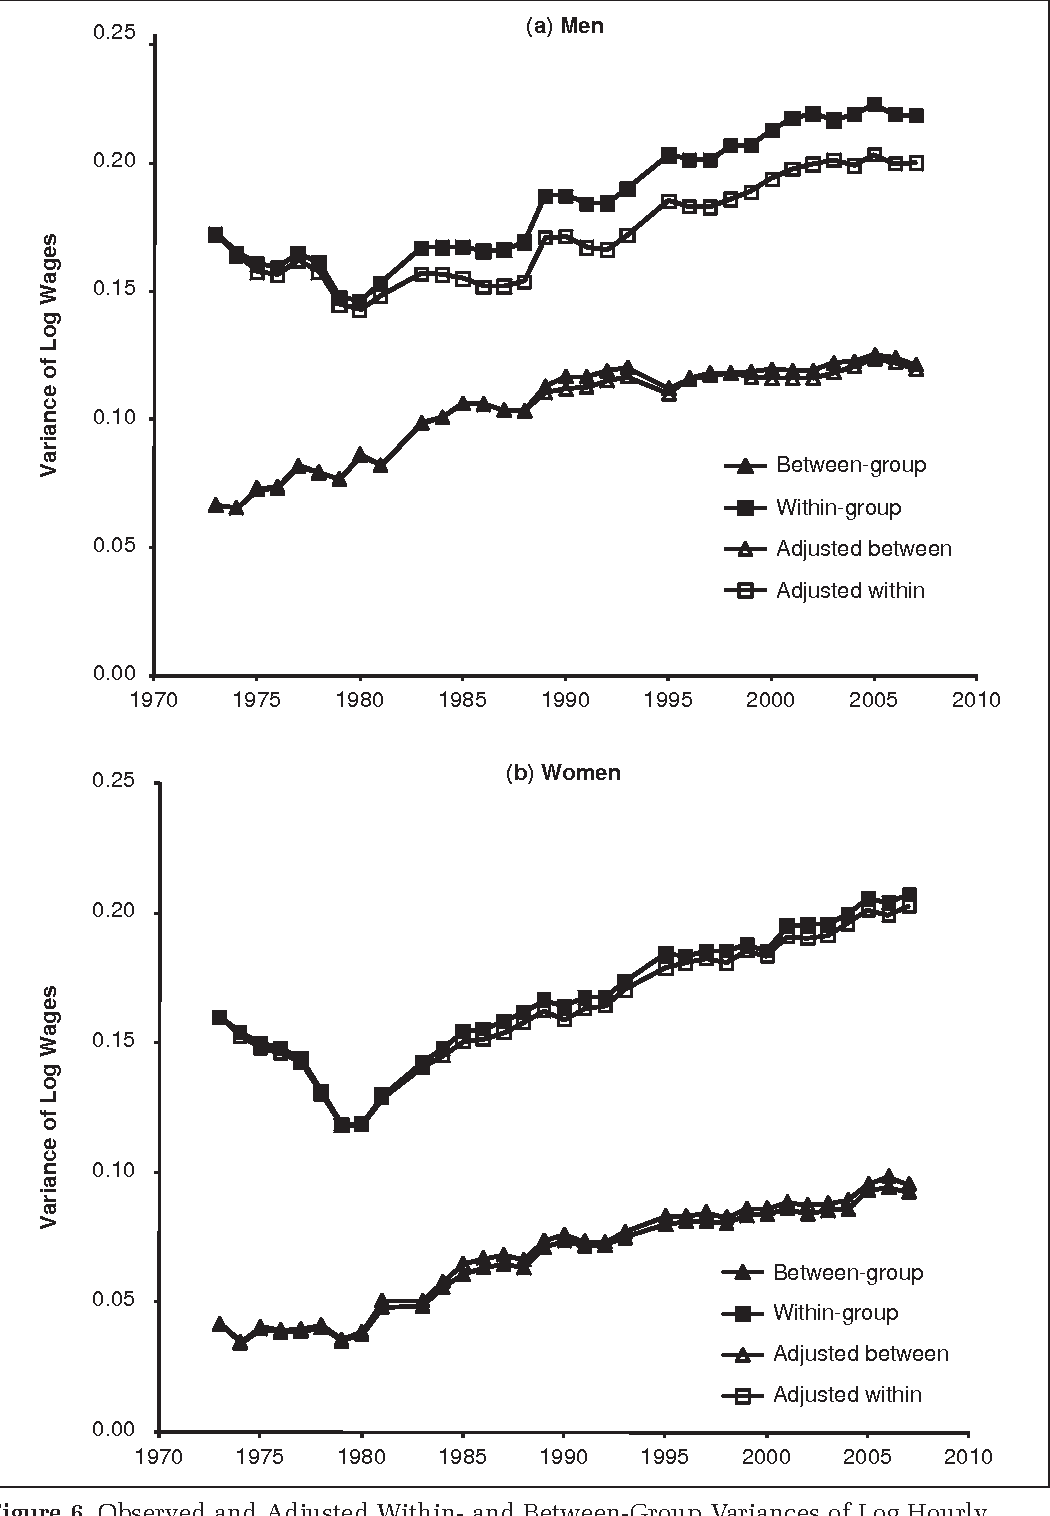 Figure 6. Observed and Adjusted Within- and Between-Group Variances of Log Hourly Wages, Full-Time, Private Sector Men and Women, 1973 to 2007; Adjusted Variances Fix Union Membership at the 1973 Level